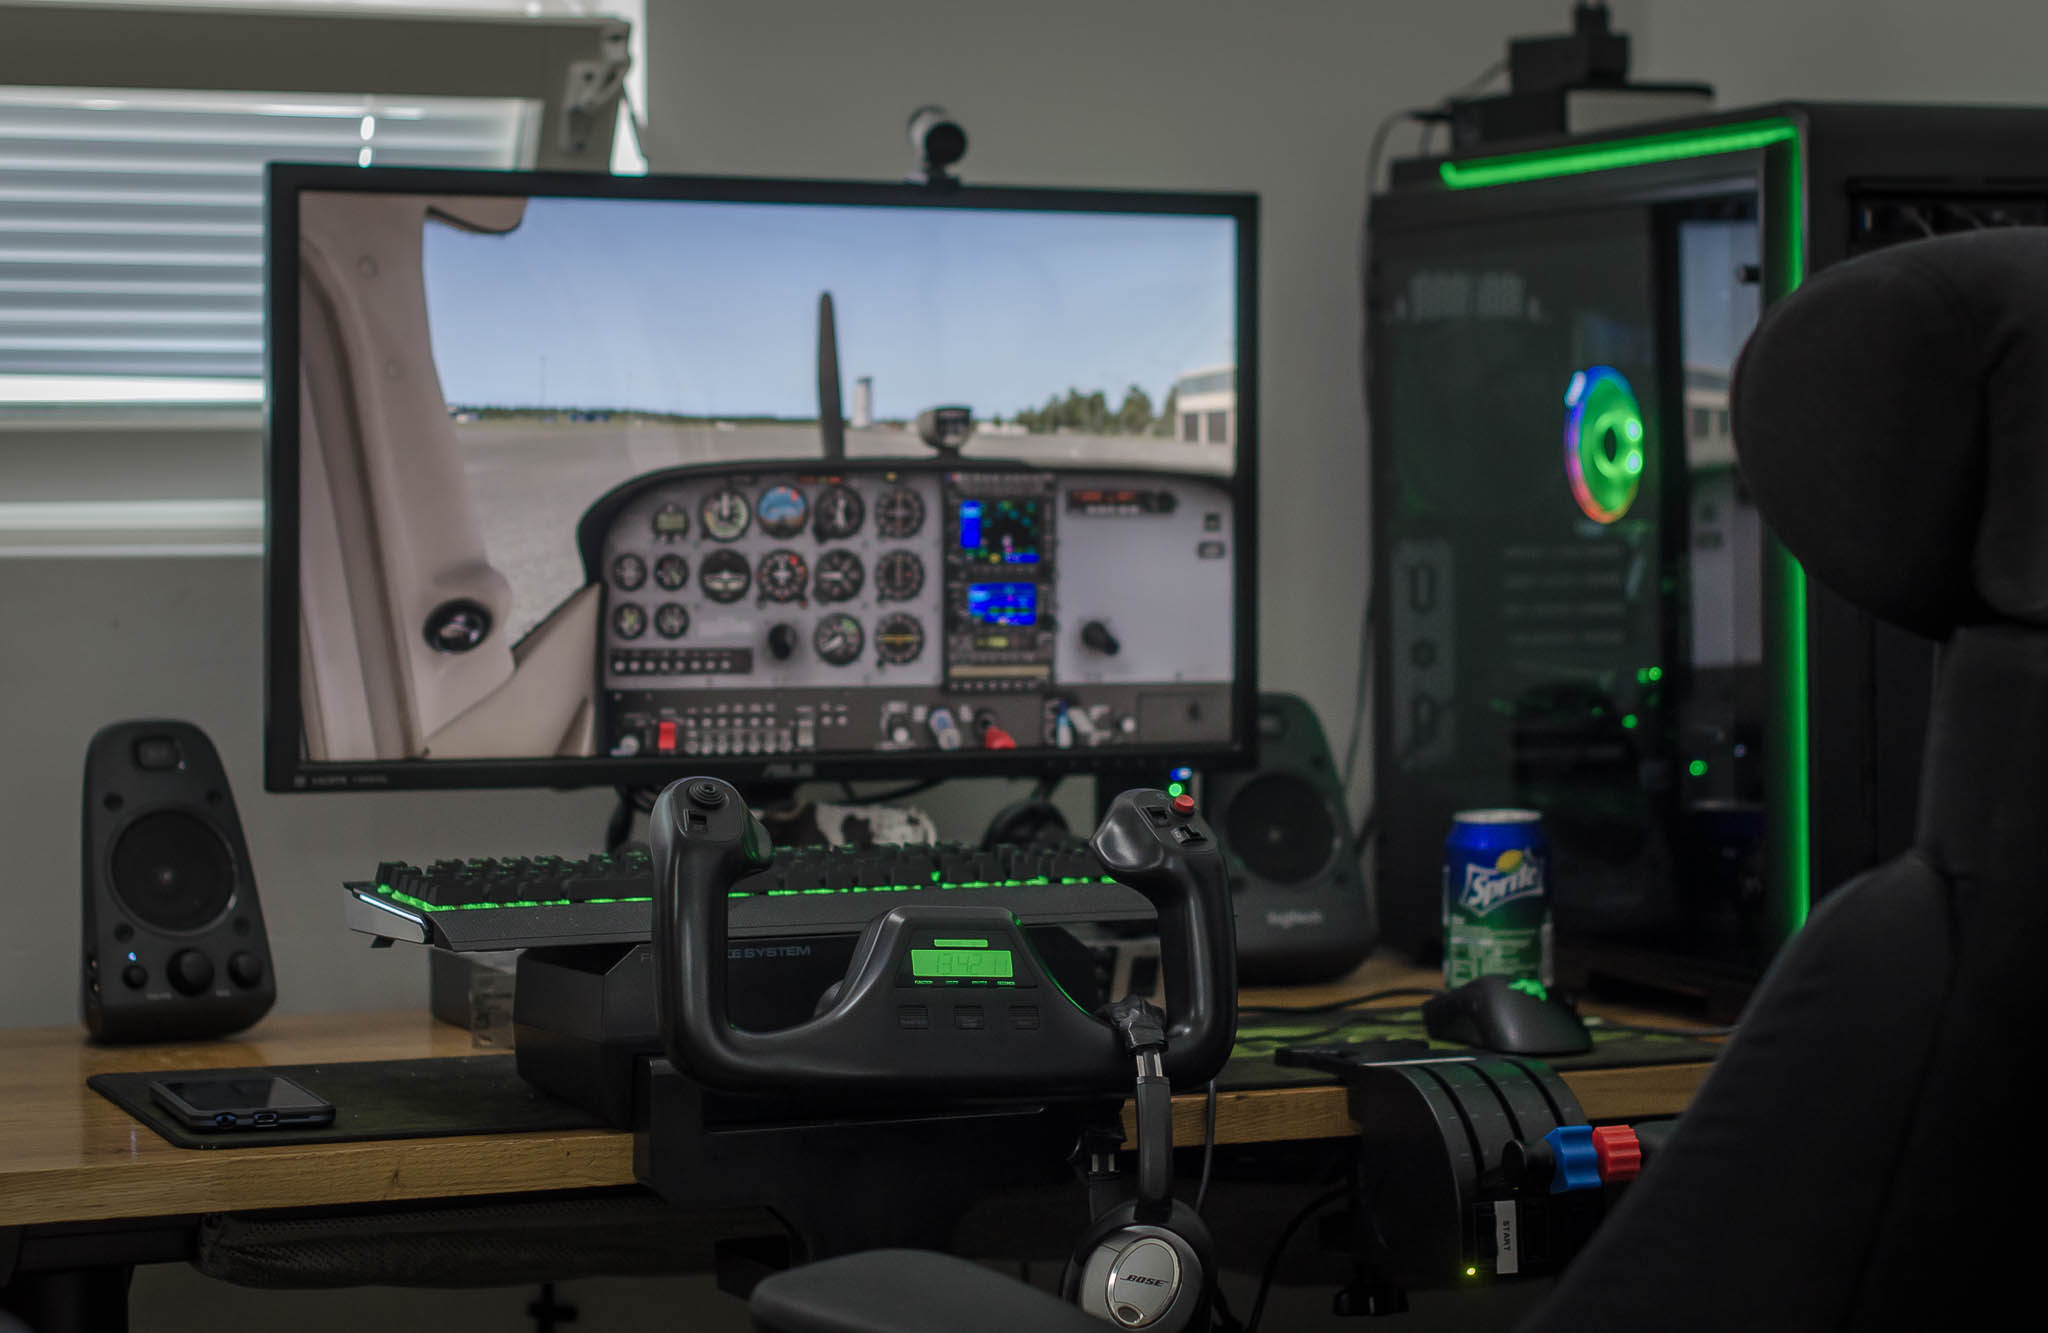 x-plane 11 home flight simulator saitek yoke system